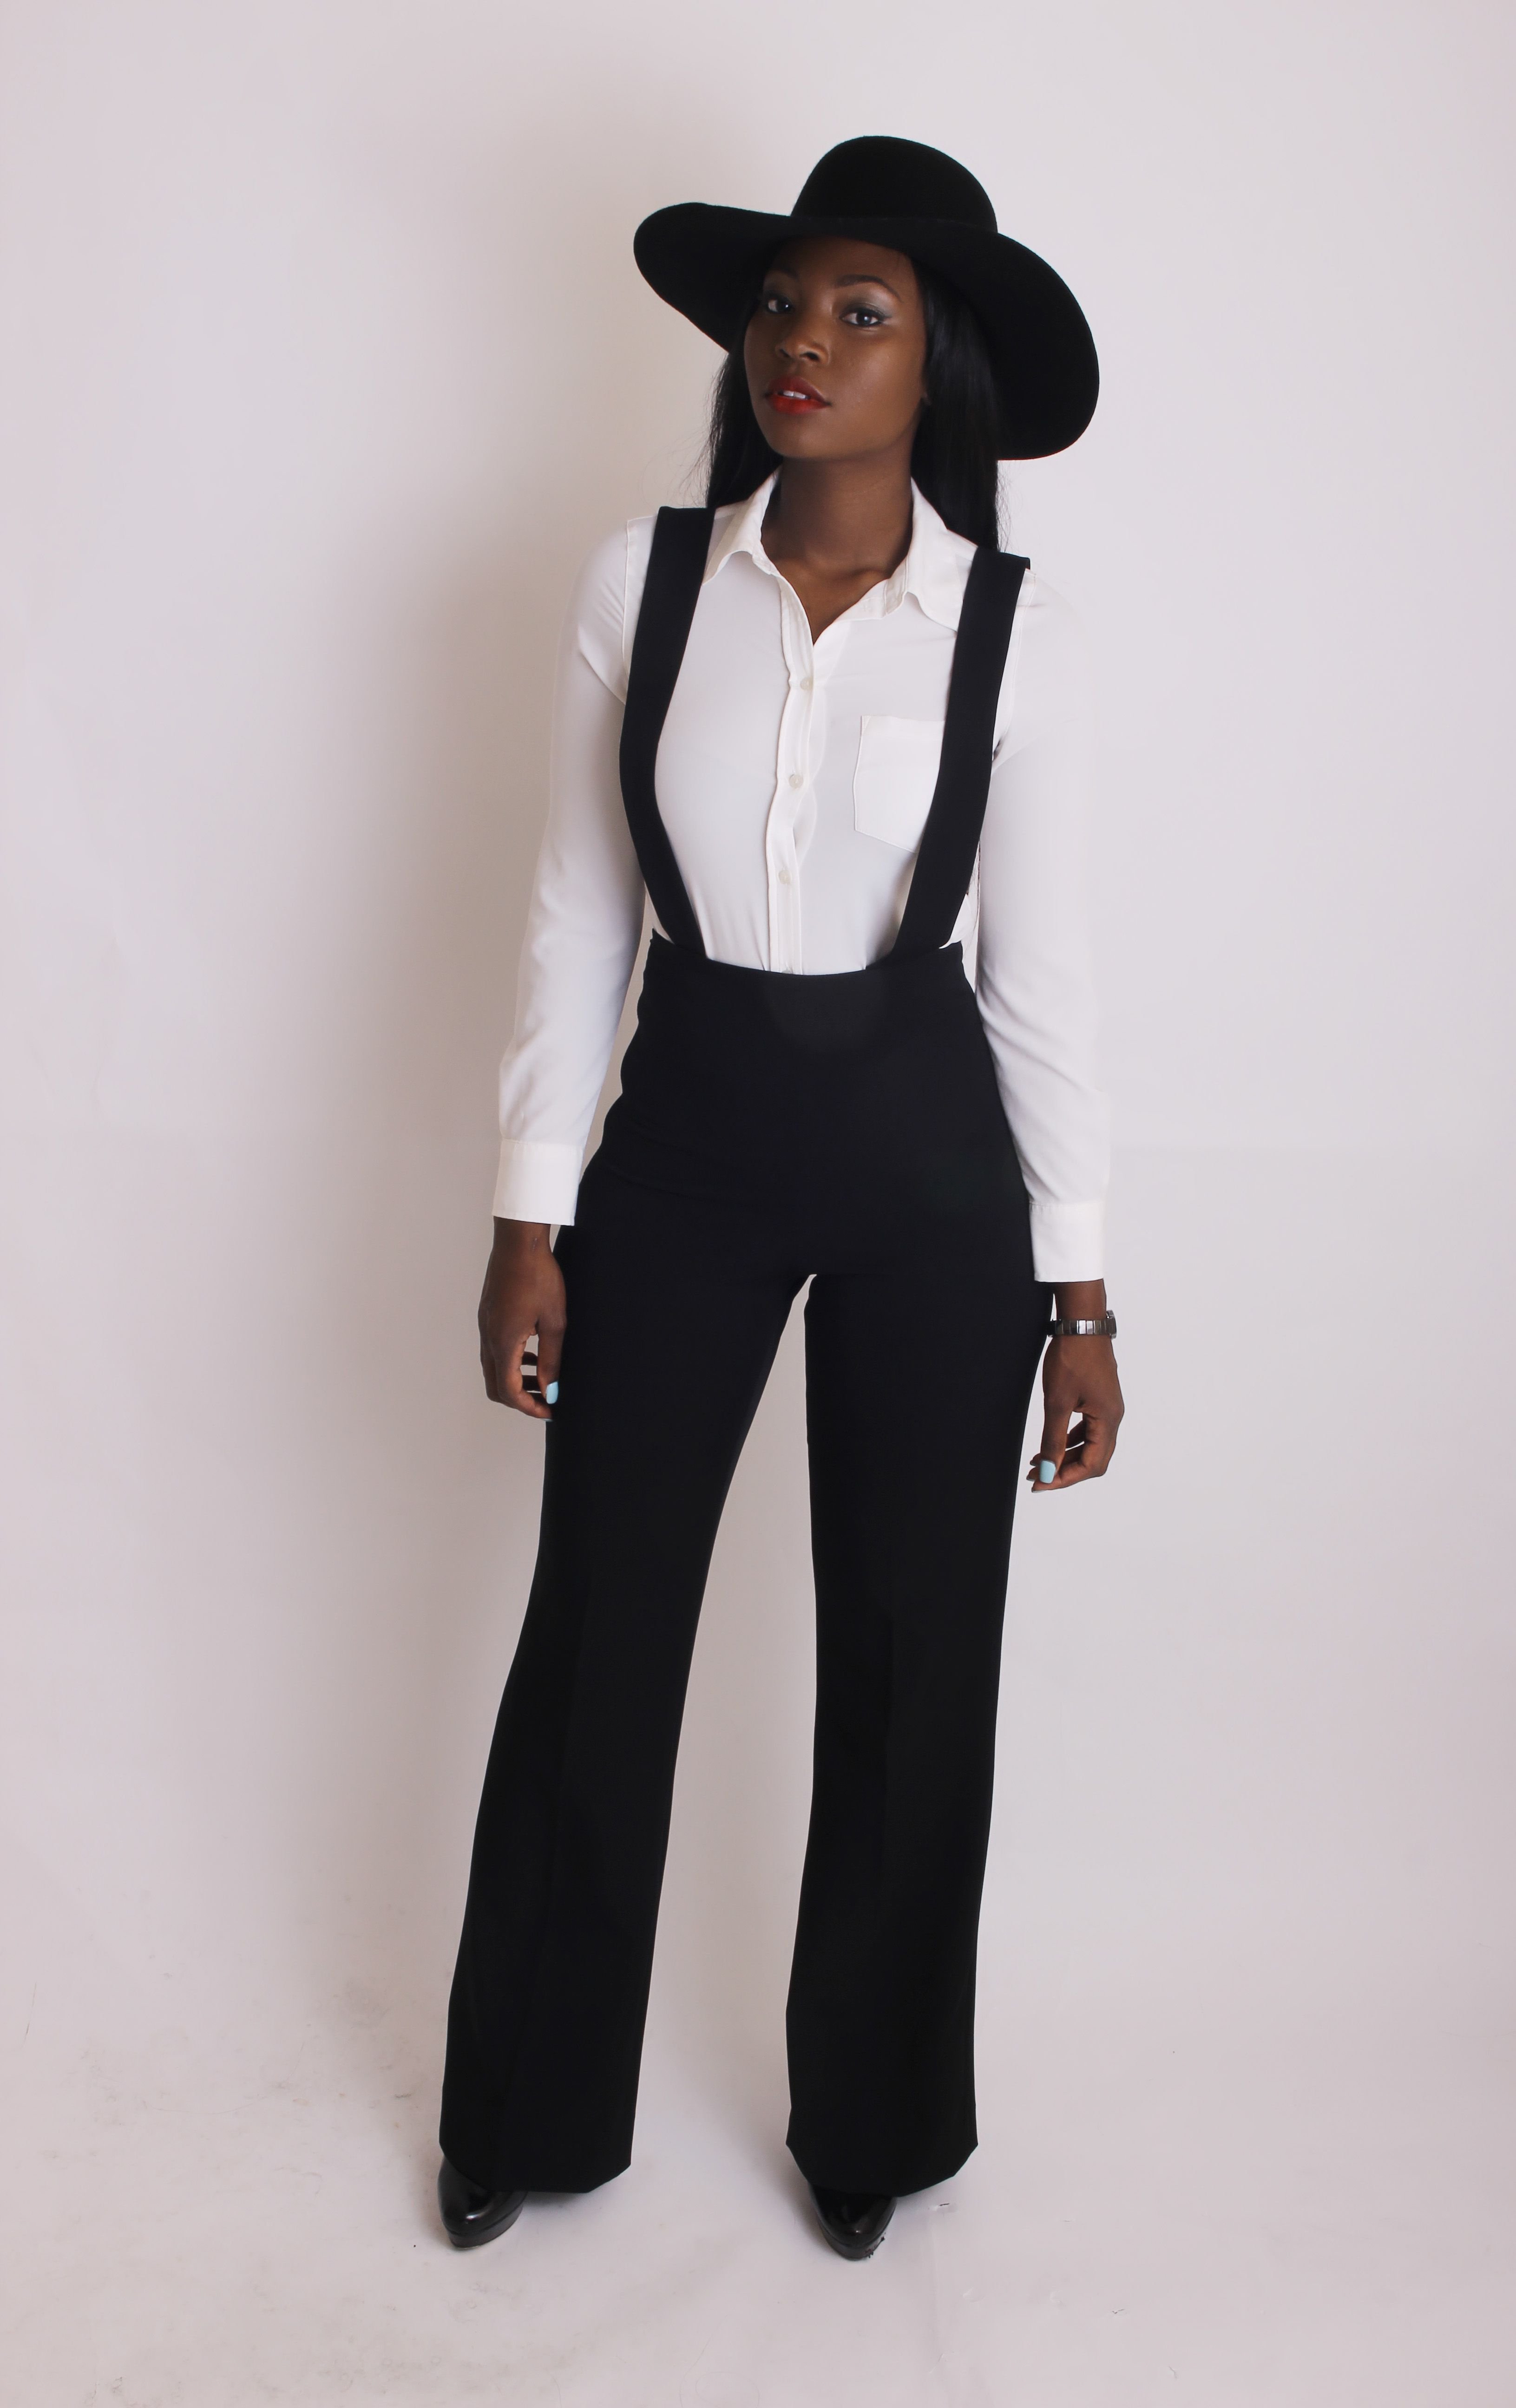 788b3c333 High waisted pants with suspenders